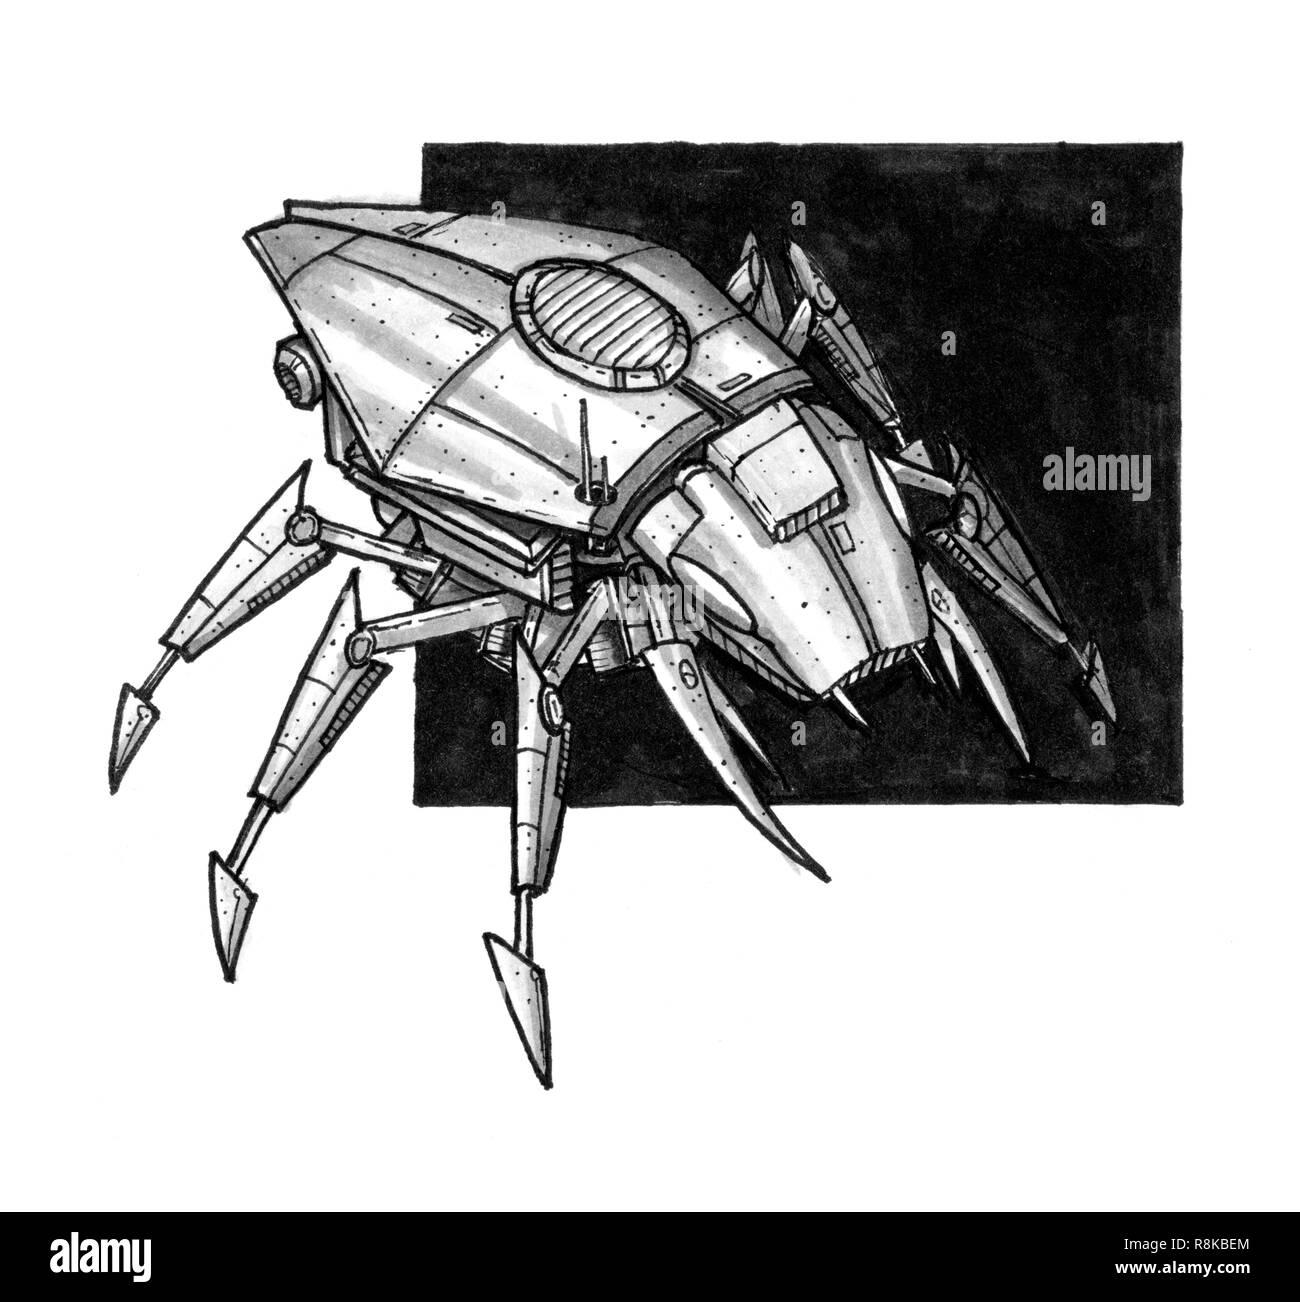 Ink Concept Art Drawing Of Futuristic Or Sci Fi Insect Robot